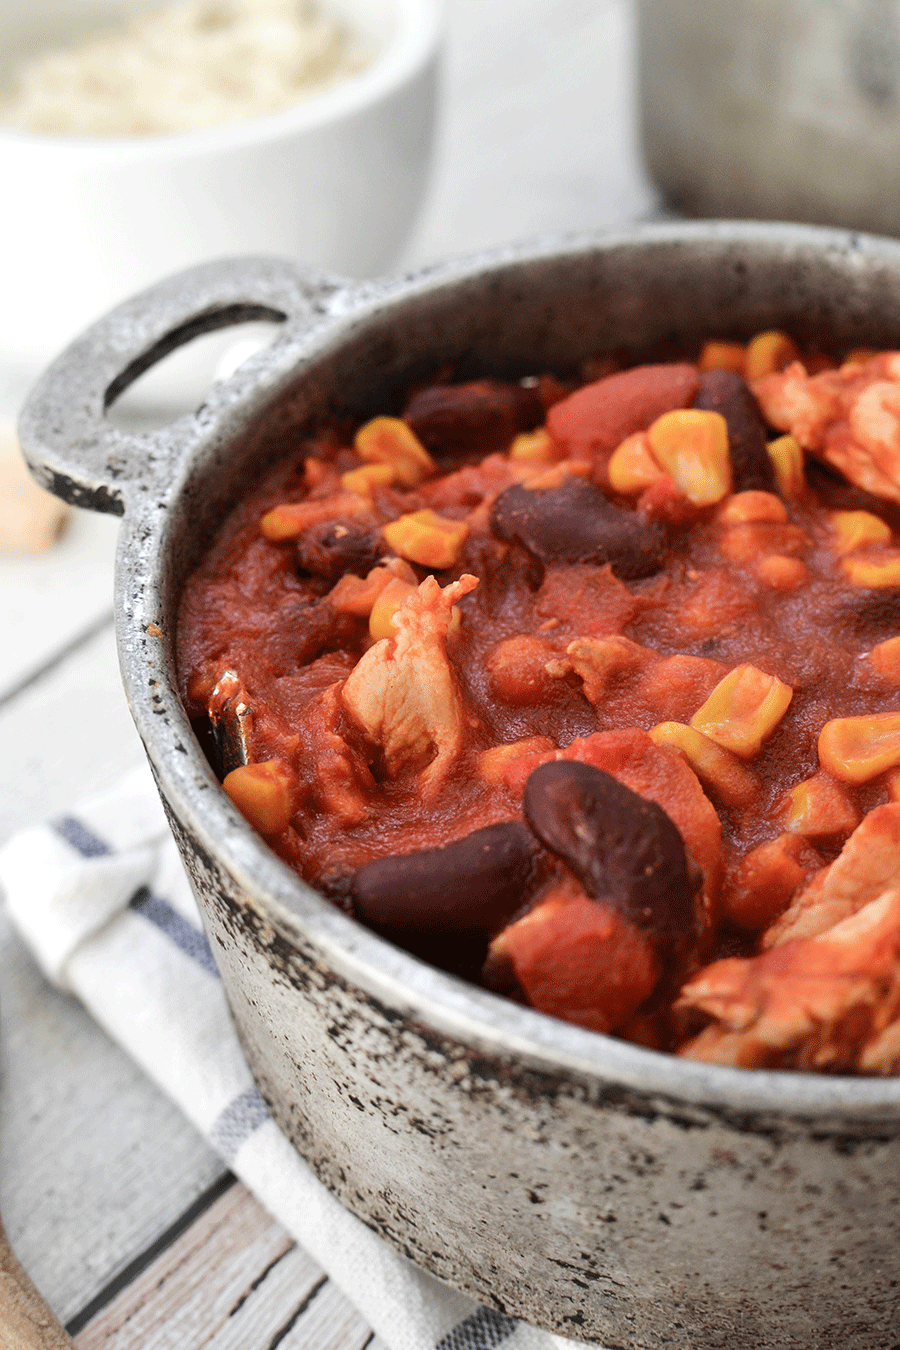 Chili con Carne mit Putenbrust (WeightWatchers)